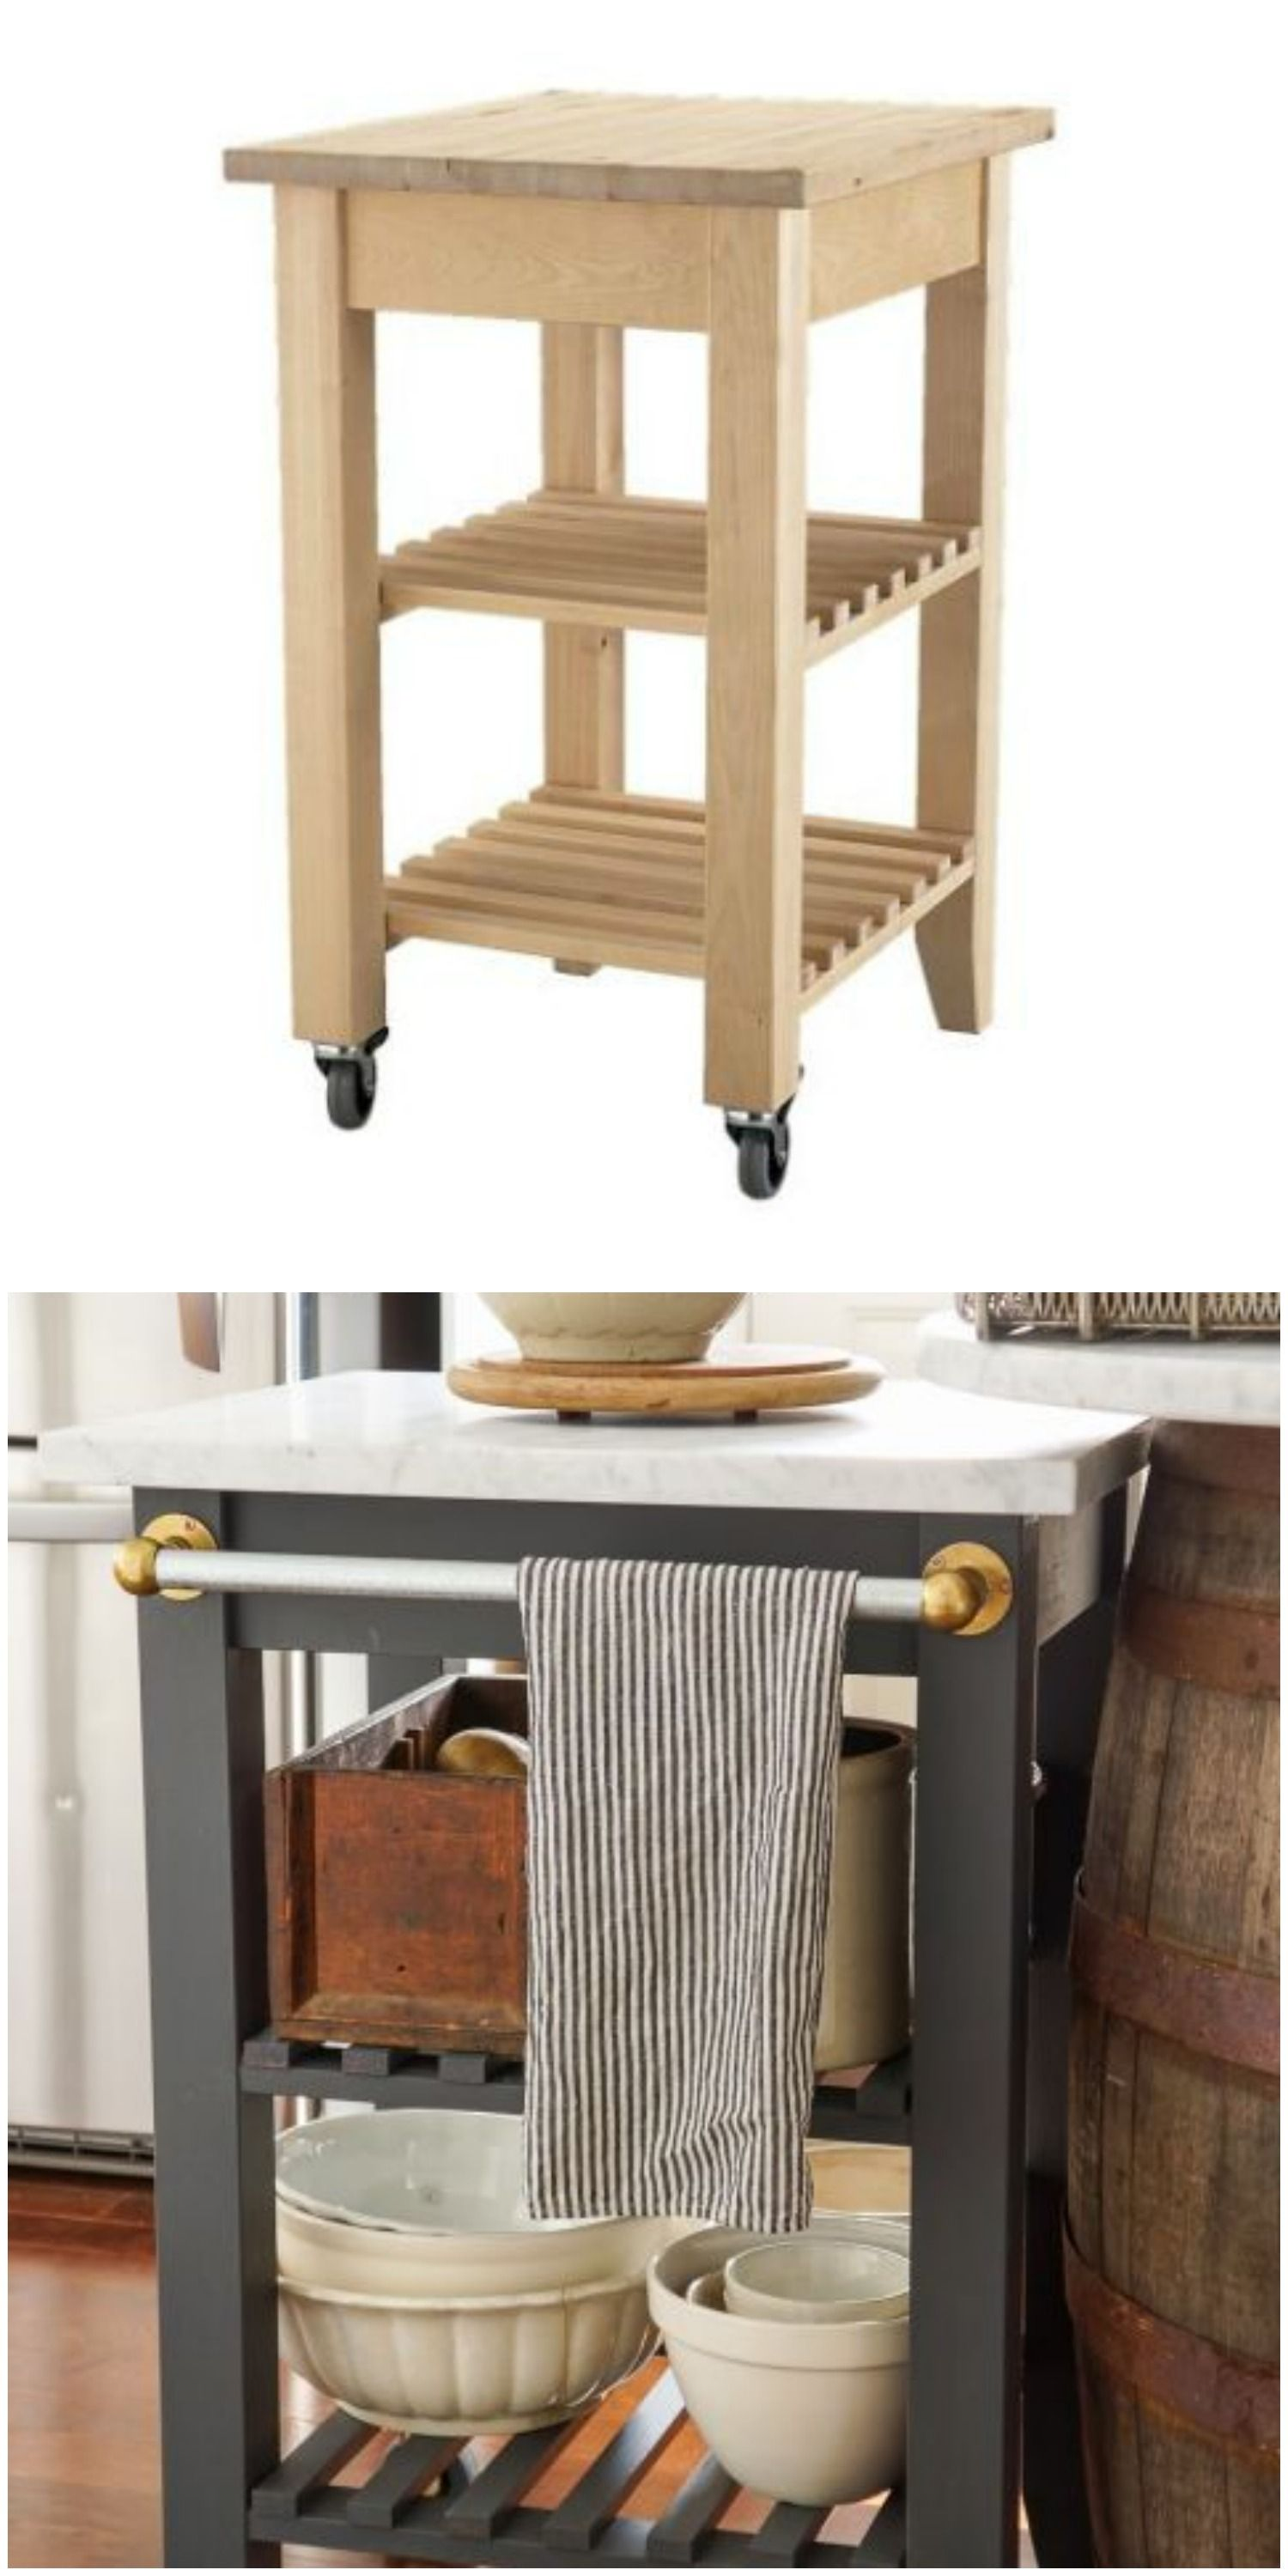 The Coolest IKEA Hacks We've Ever Seen Portable kitchen